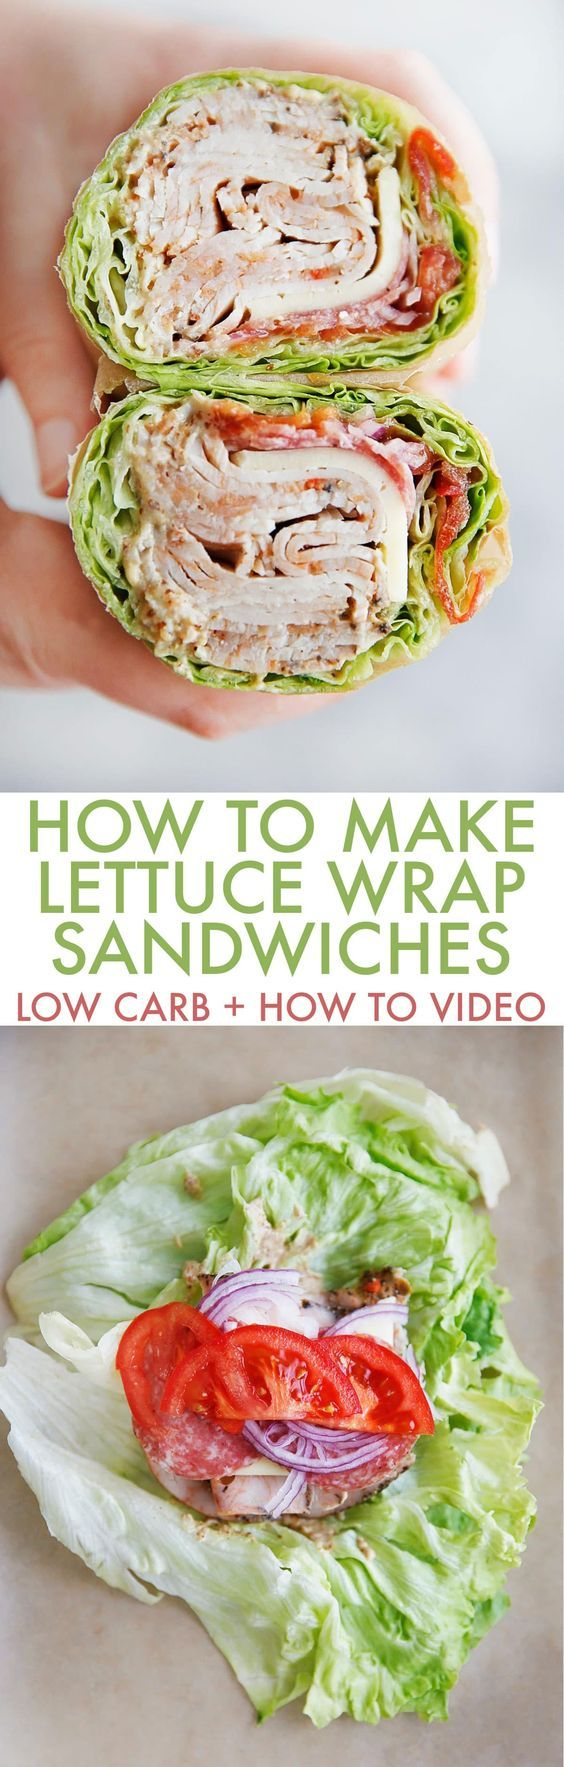 How to Make a Lettuce Wrap Sandwich (Low Carb) - Lexi's Clean Kitchen #lettucewrap #keto #sandwich #glutenfree #paleo